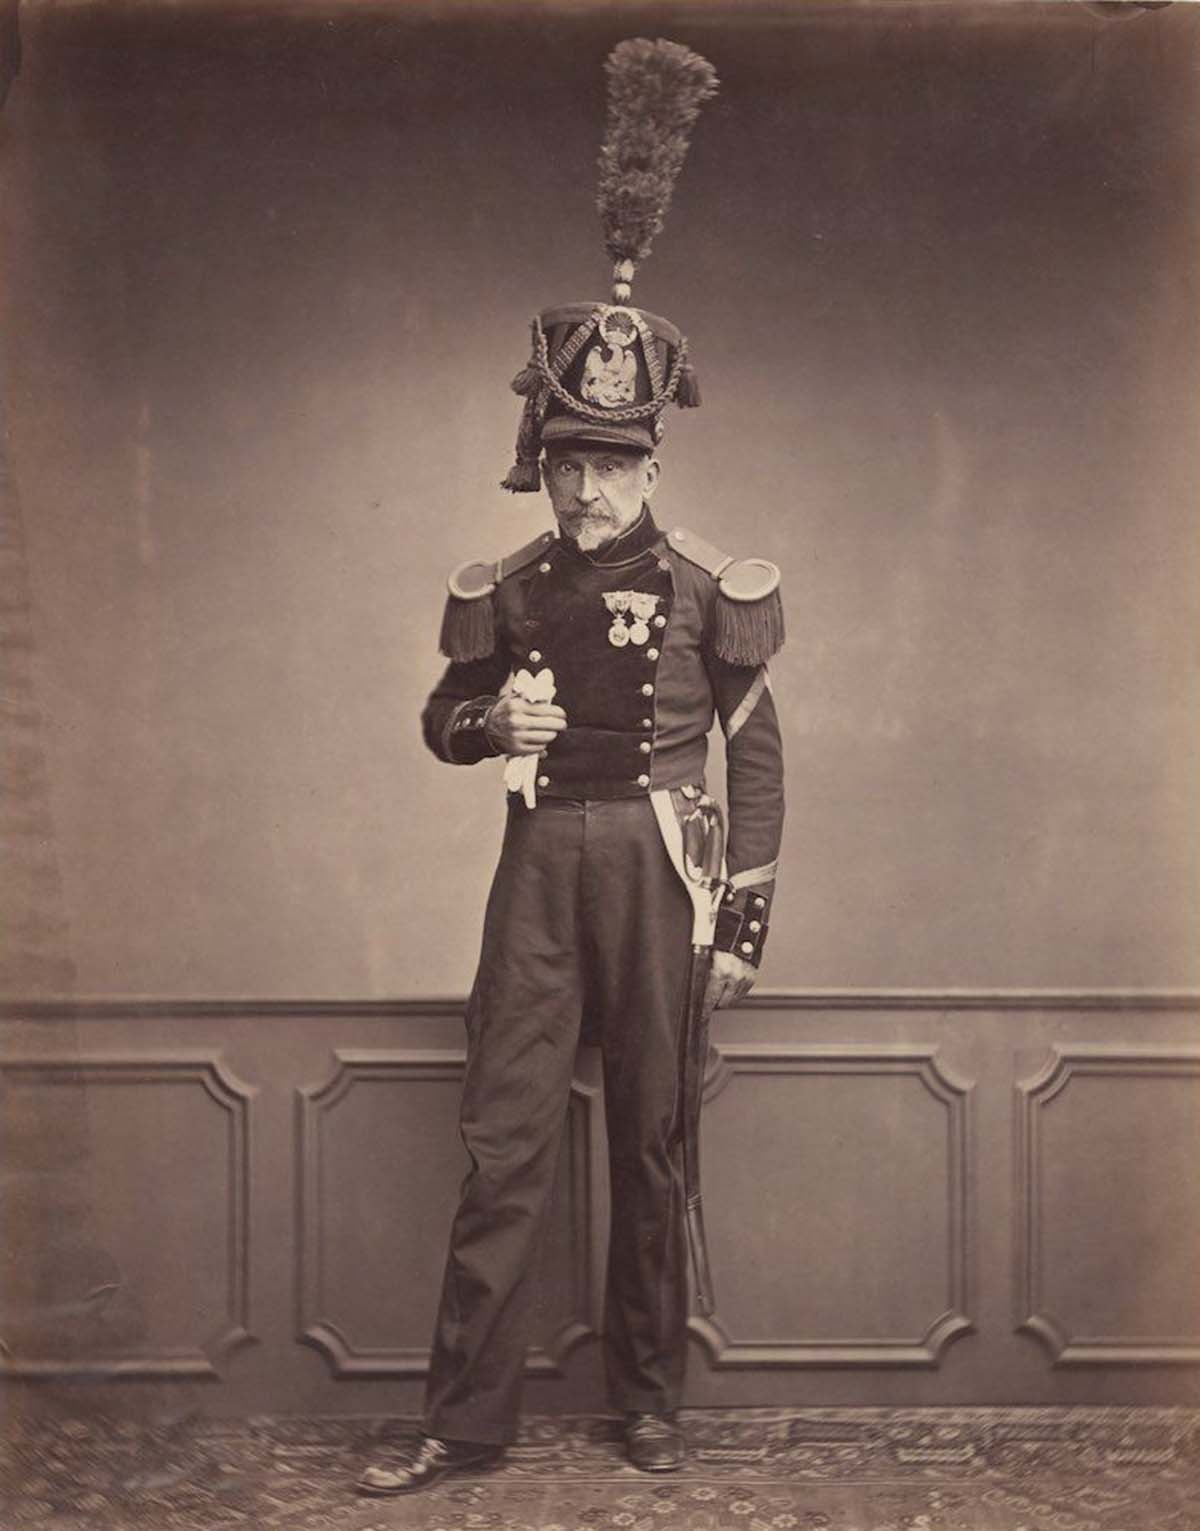 Monsieur Lefebre, a sergeant in the 2nd Regiment of Engineers in 1815.